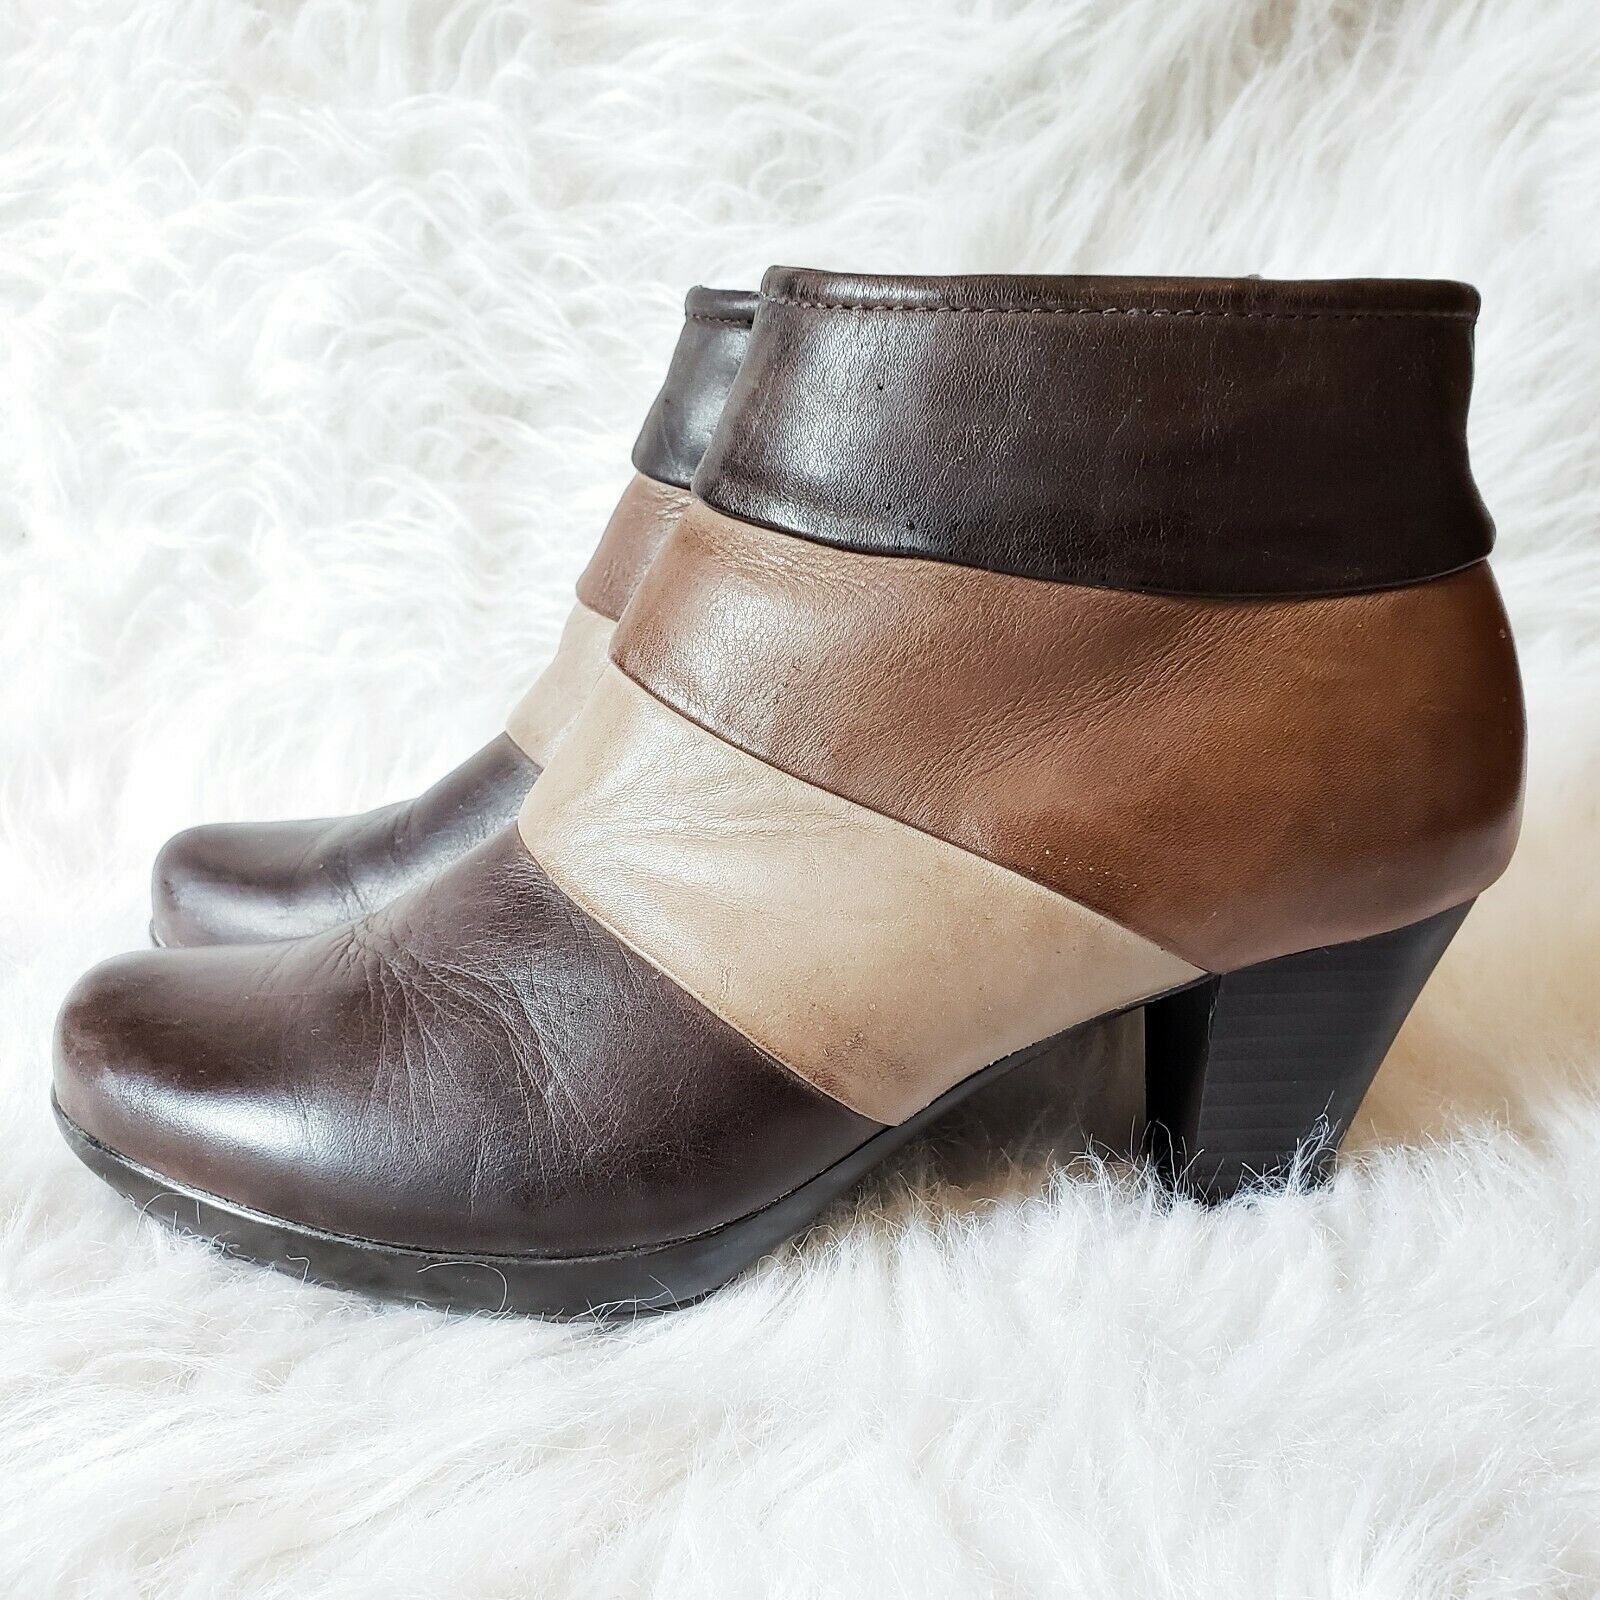 Spring Step Boots Sz 7 37 Generate Bootie Leather Heel Brown Beige